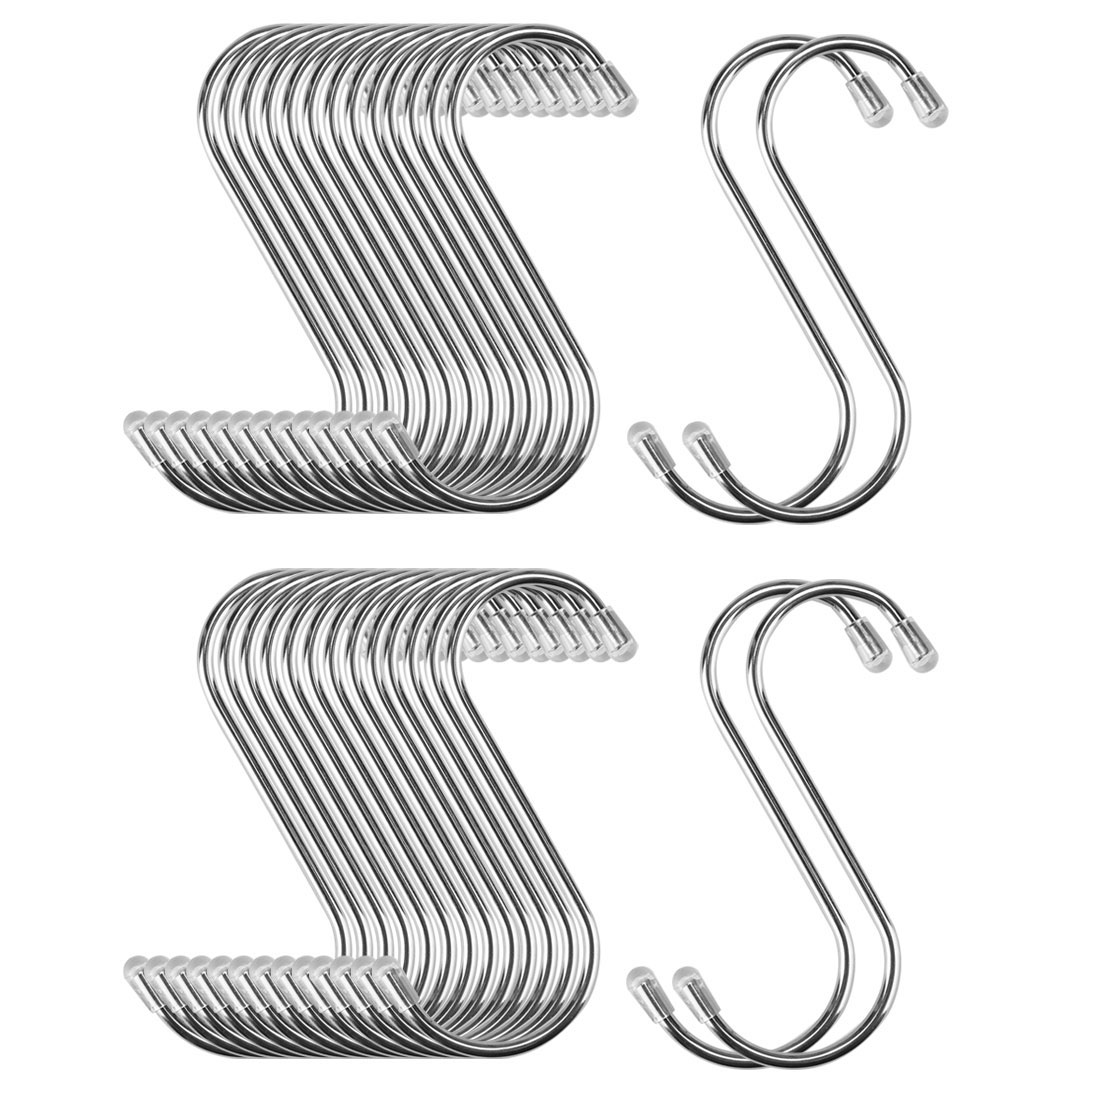 30pcs 2.56 Inch S Shaped Hook Stainless Steel for Kitchenware Hat Coat Holder